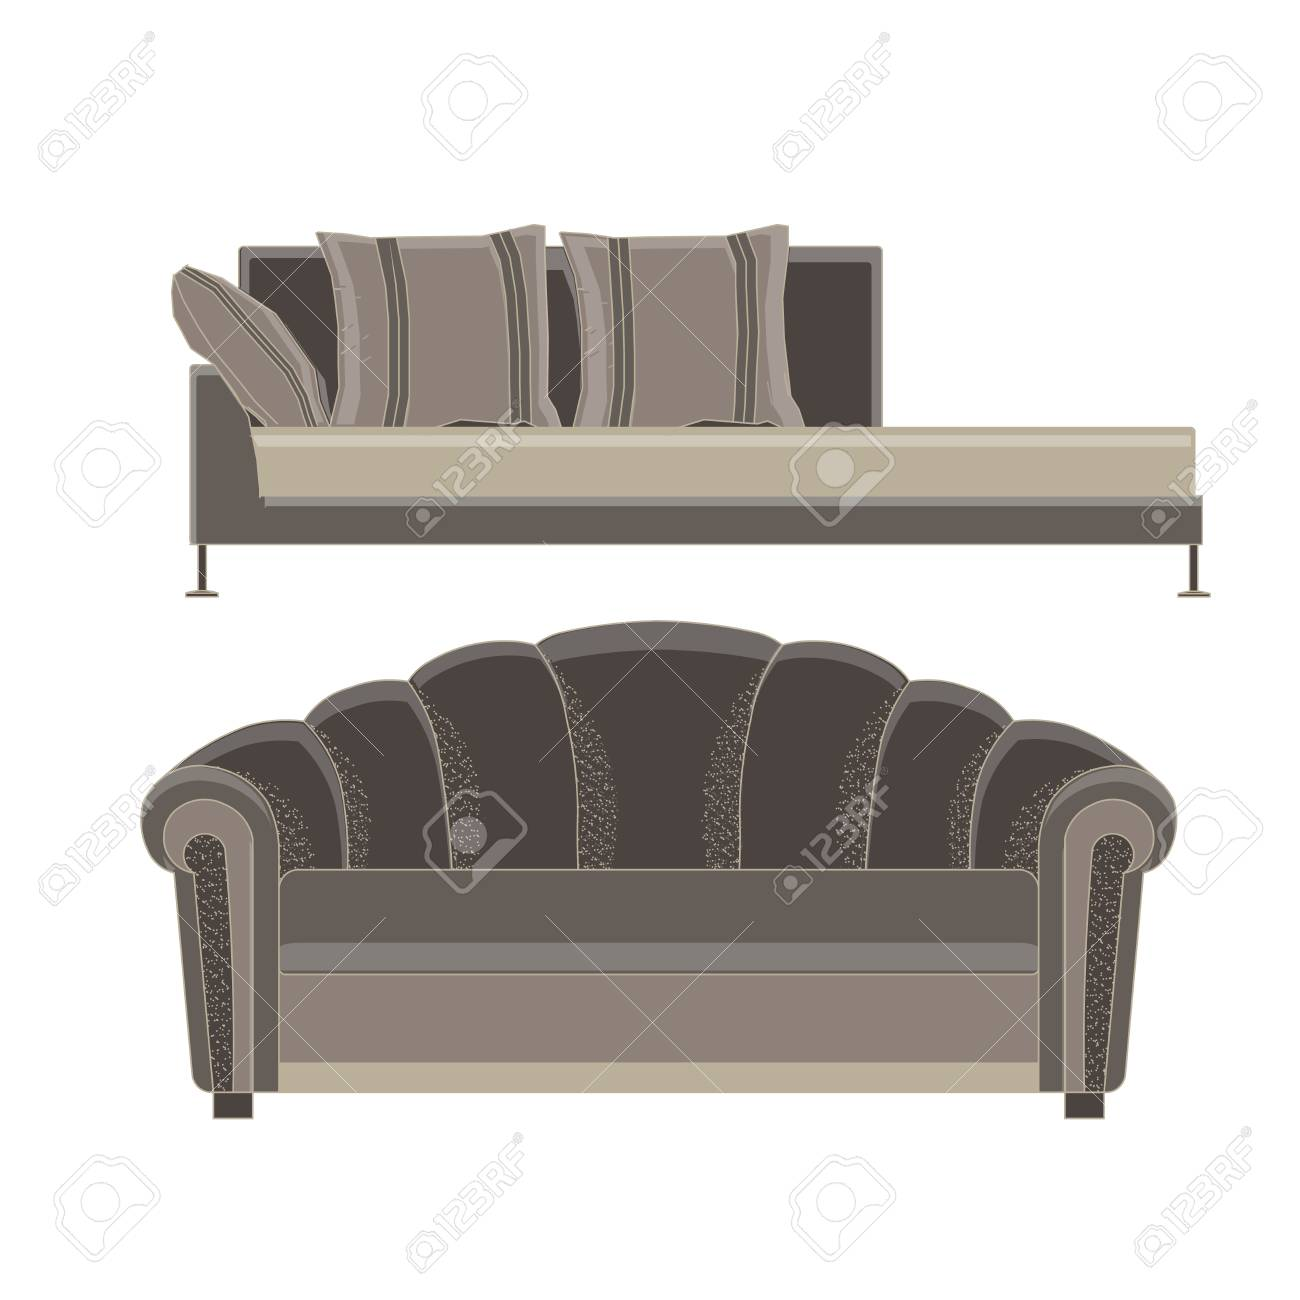 Sofa Set Furniture Vector Room Interior Living Illustration Chair